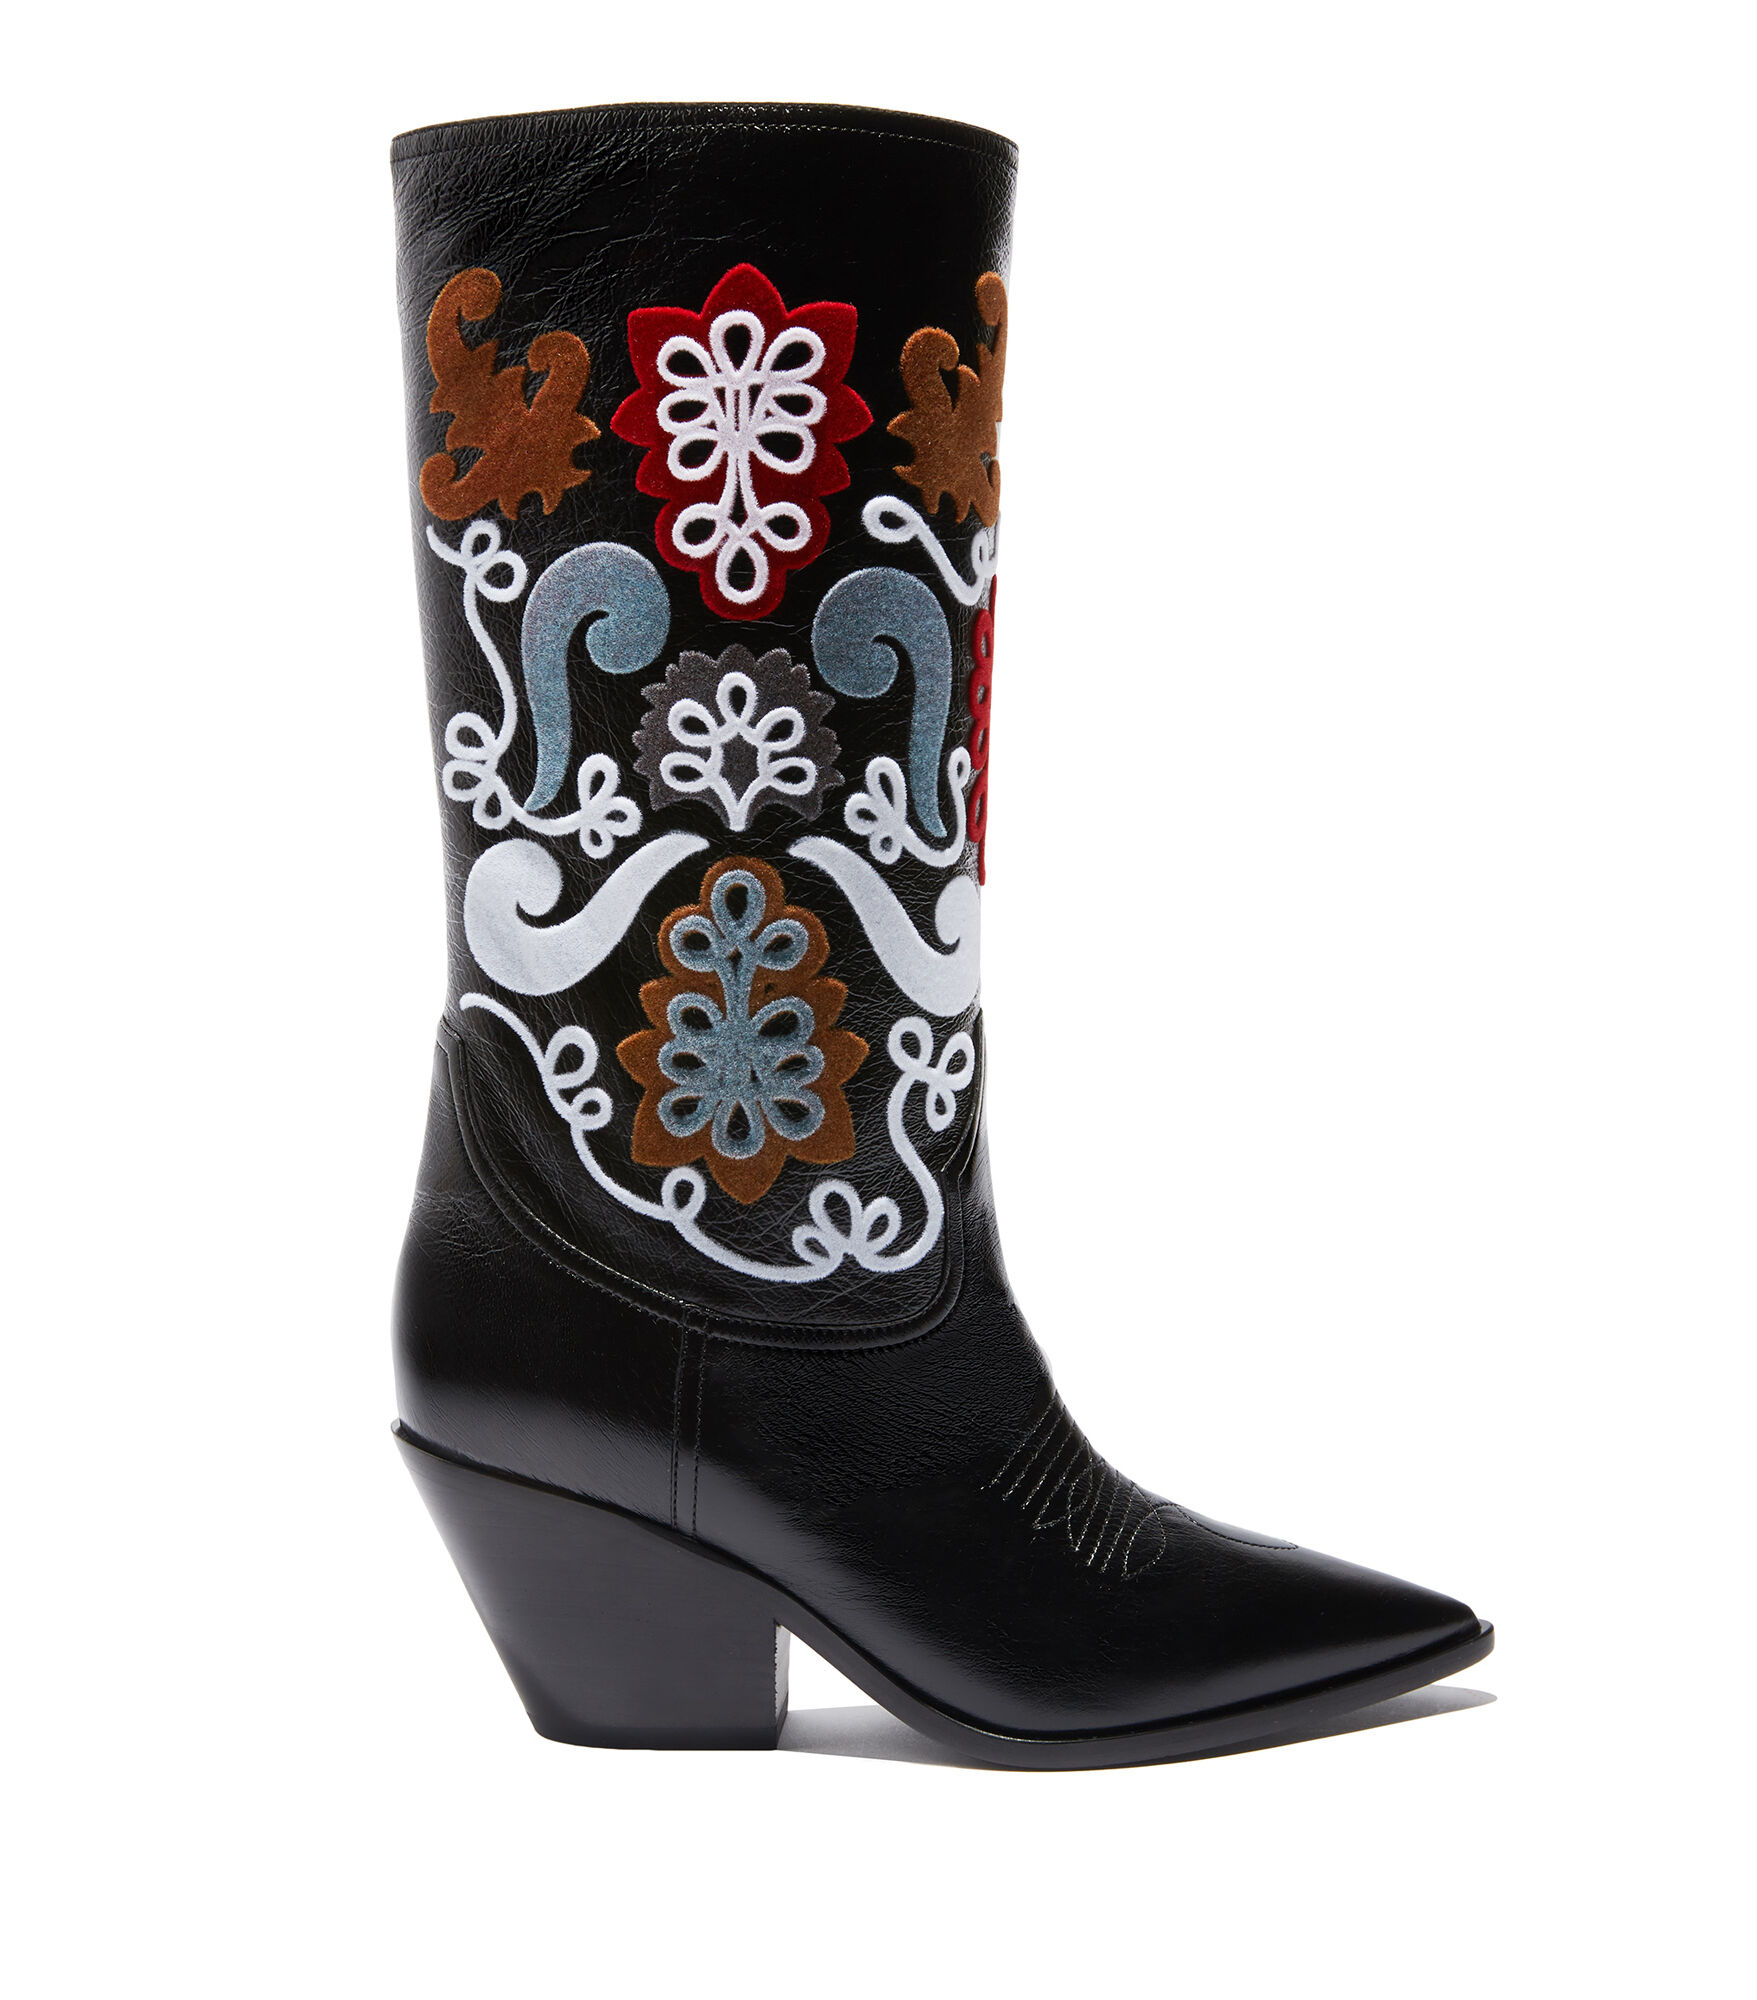 Casadei High Boots - West Black Calf leather and velvet